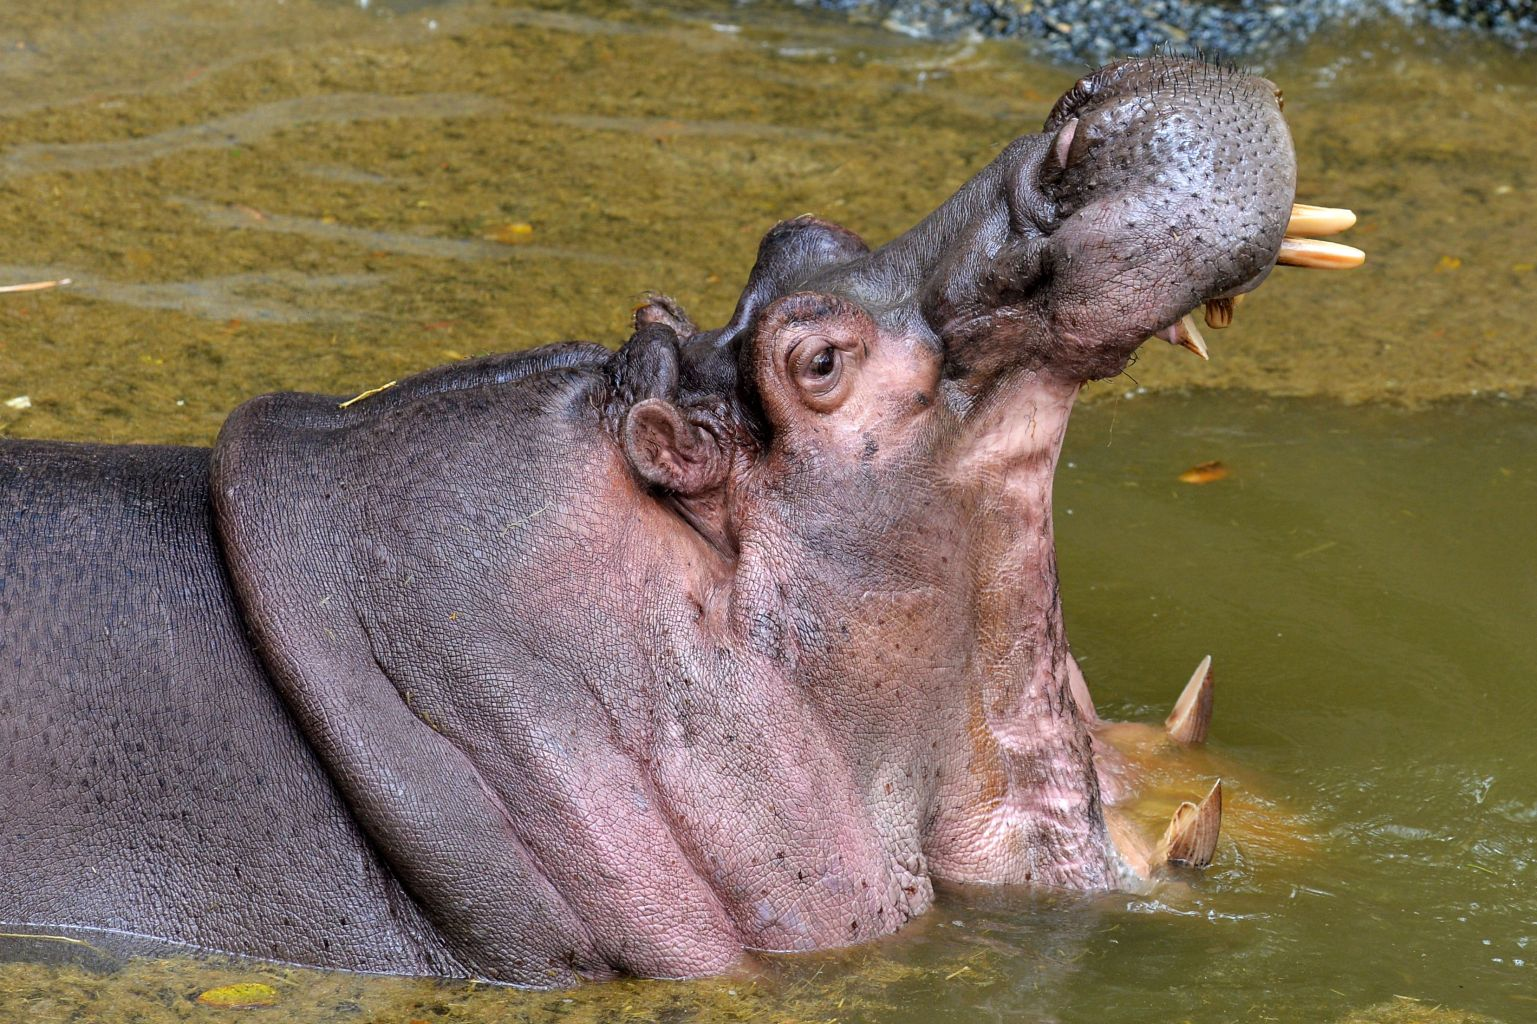 Karthik, a 27-year-old hippopotamus, opens its mouth in its enclosure at the Bannerghatta Biological Park in Bangalore on February 9, 2018.    / AFP PHOTO / MANJUNATH KIRAN        (Photo credit should read MANJUNATH KIRAN/AFP/Getty Images)